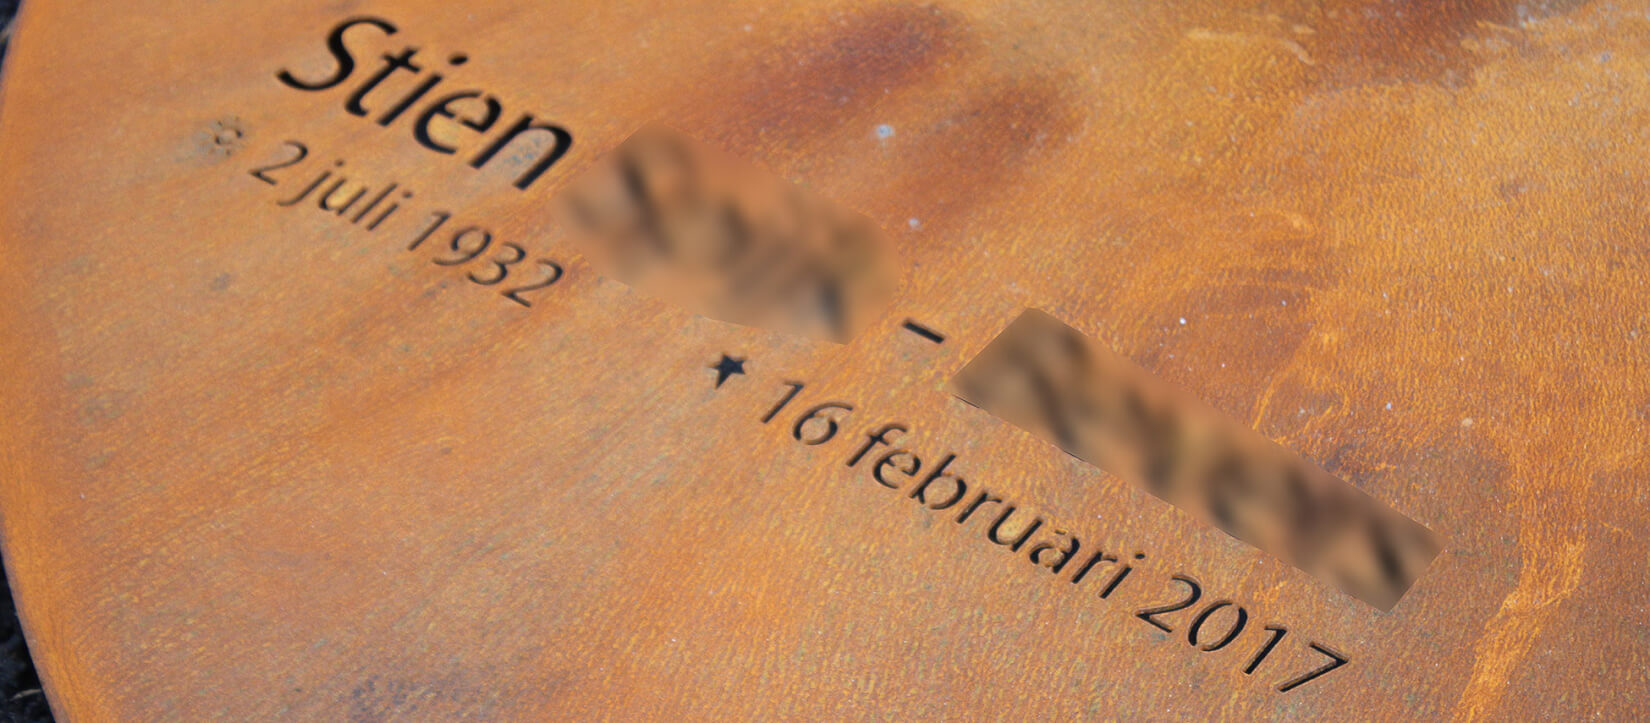 corten staal geroest staal grafmonument